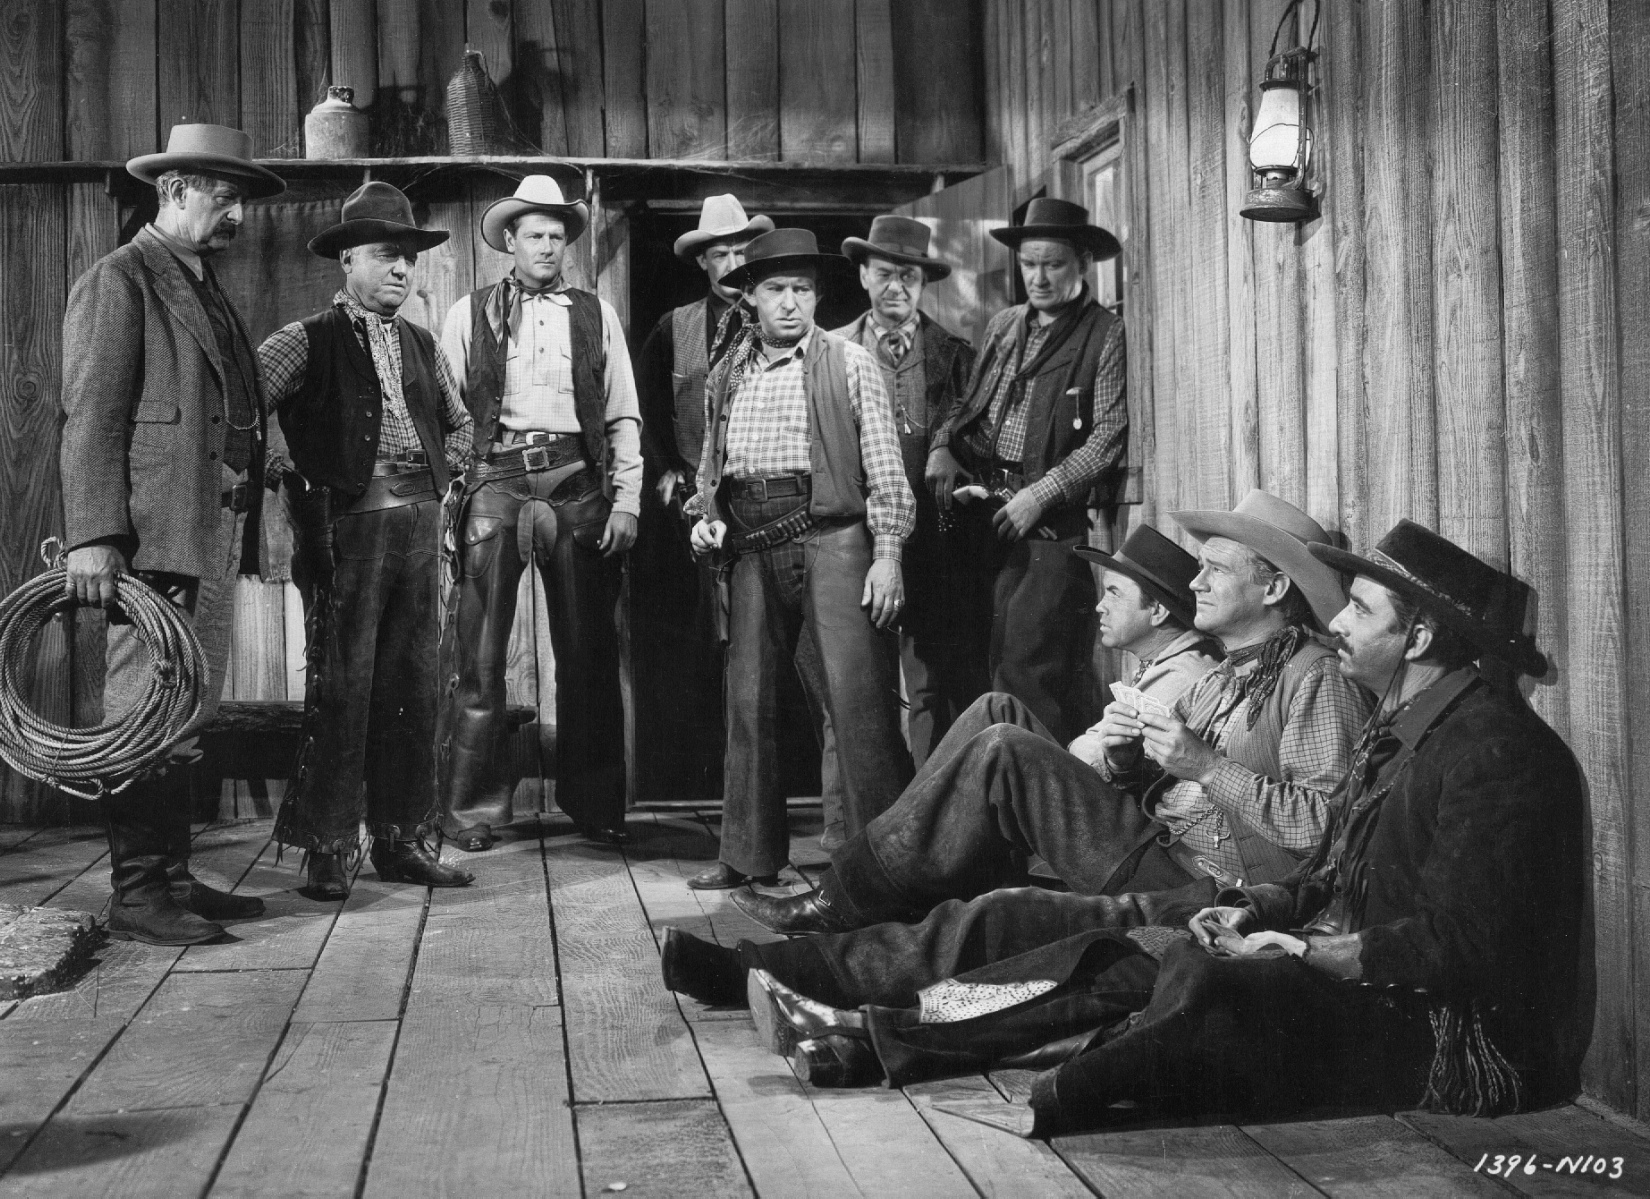 Paul Guilfoyle, Stanley Andrews, William Frawley, Larry Lawson, Joel McCrea, Sonny Tufts, and Tom Tully in The Virginian (1946)